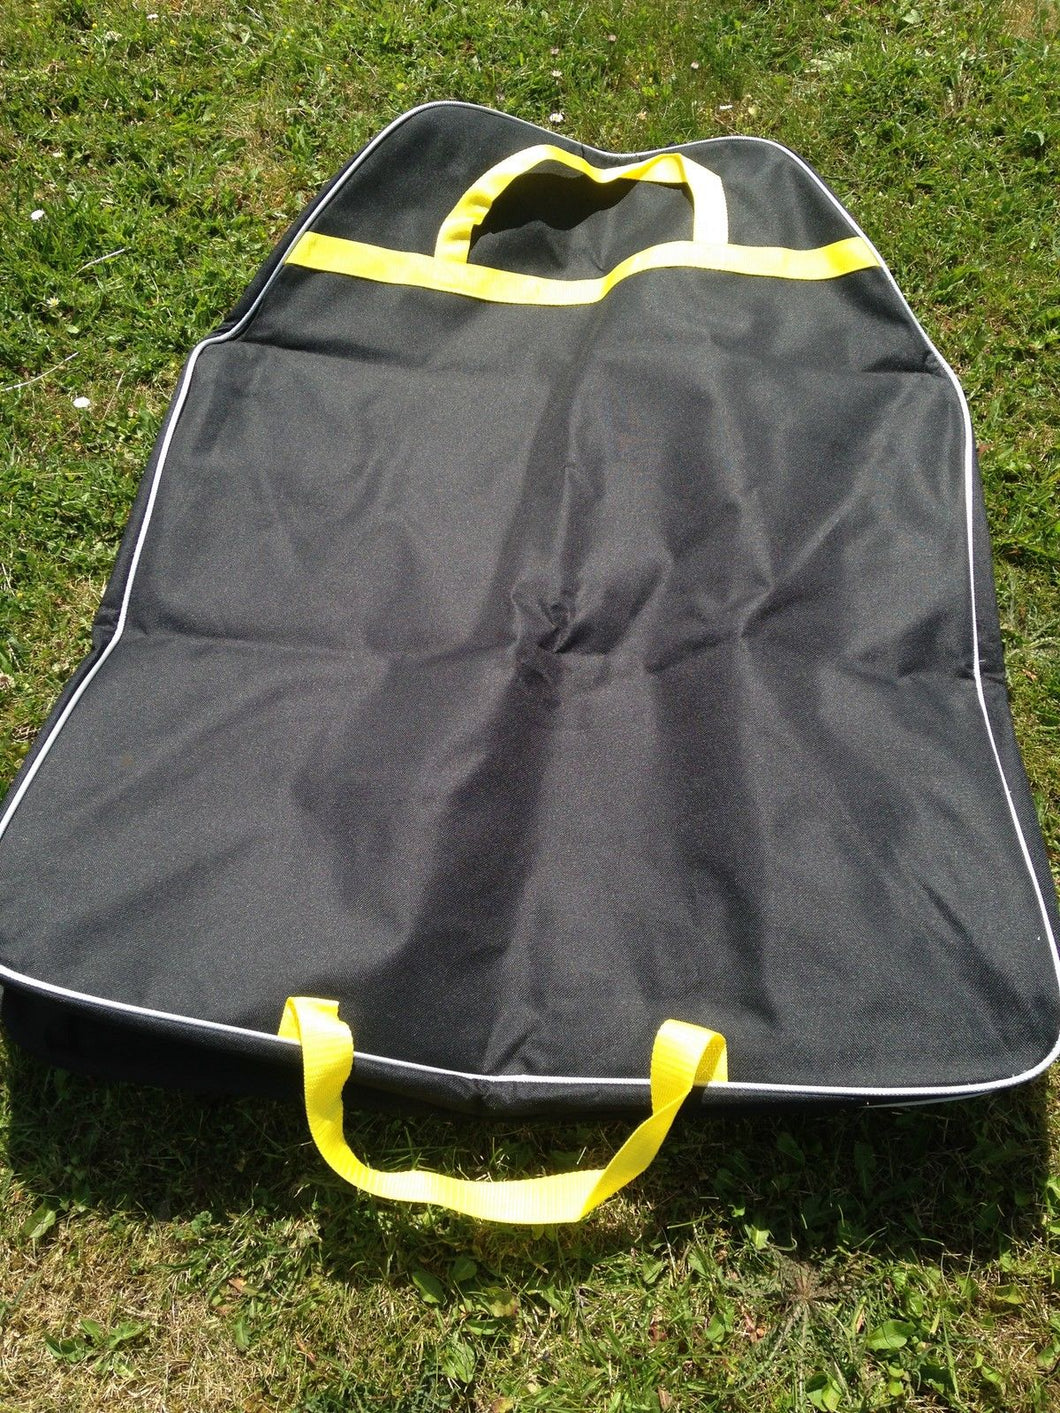 JL Golf Waterprood Electric Trolley Cover